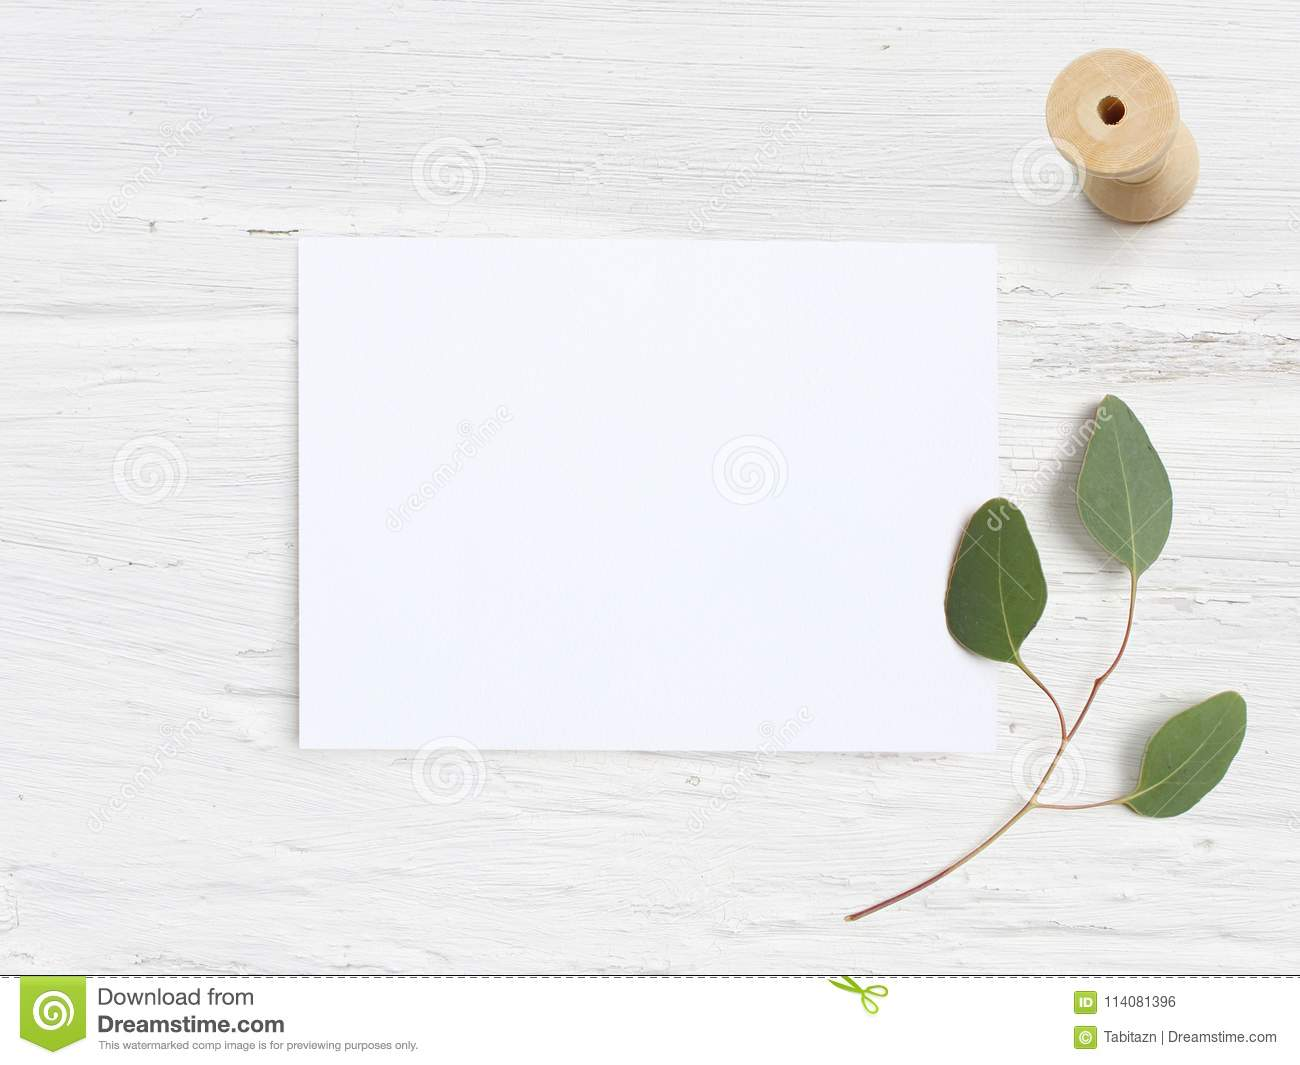 Feminine wedding desktop mock-up with blank paper card, wooden spool and Eucalyptus populus branch on white shabby table